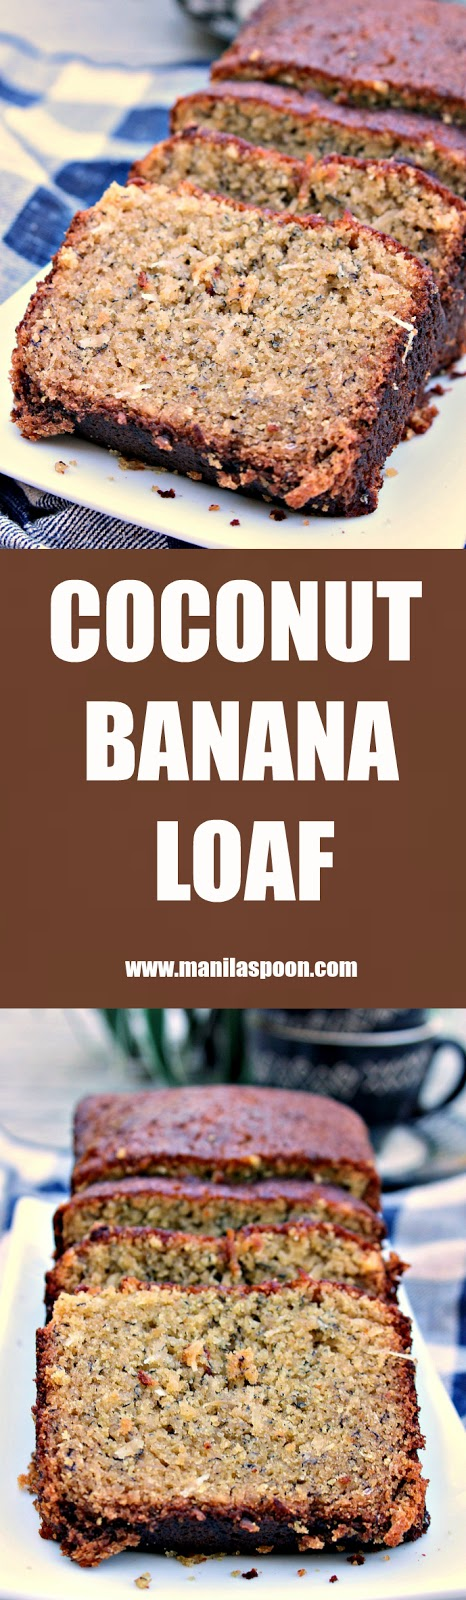 Treat yourself to this super moist and truly scrumptious Coconut Banana Loaf (Bread) that has all the yummy notes of coconut, tangy lemons and sweet Bananas! | manilaspoon.com